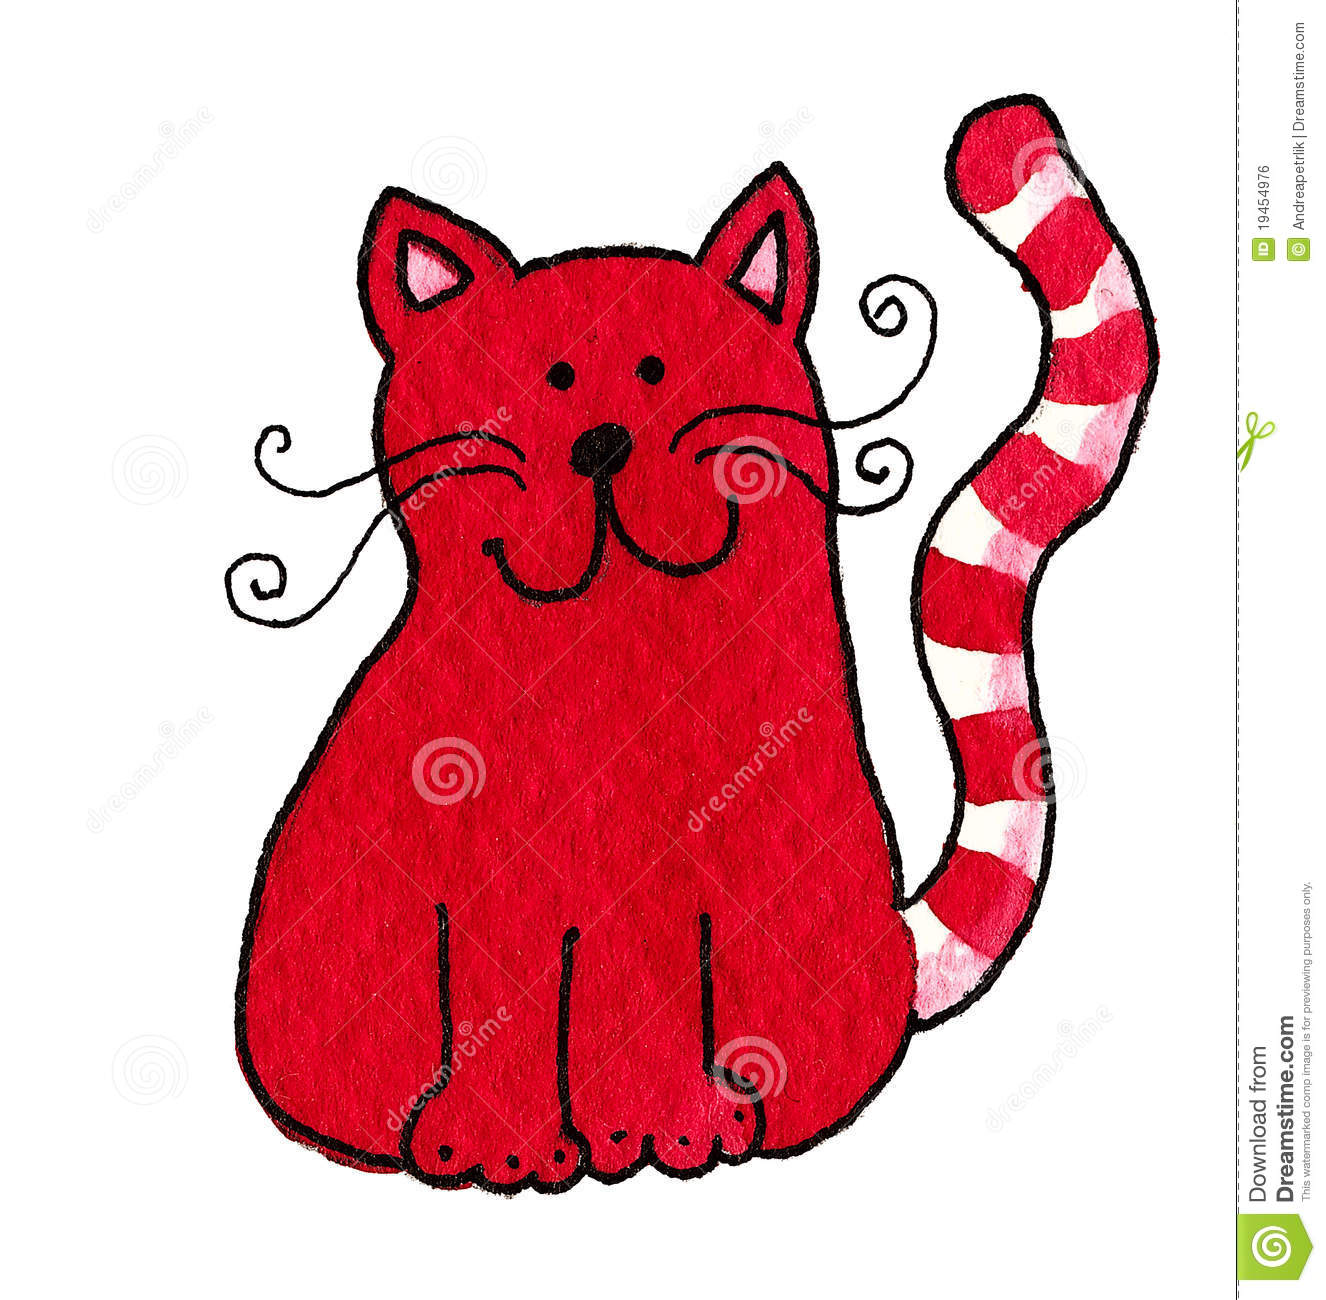 cute red cat stock illustration image of icon  image free clip art cats kittens free clip art cats and dogs